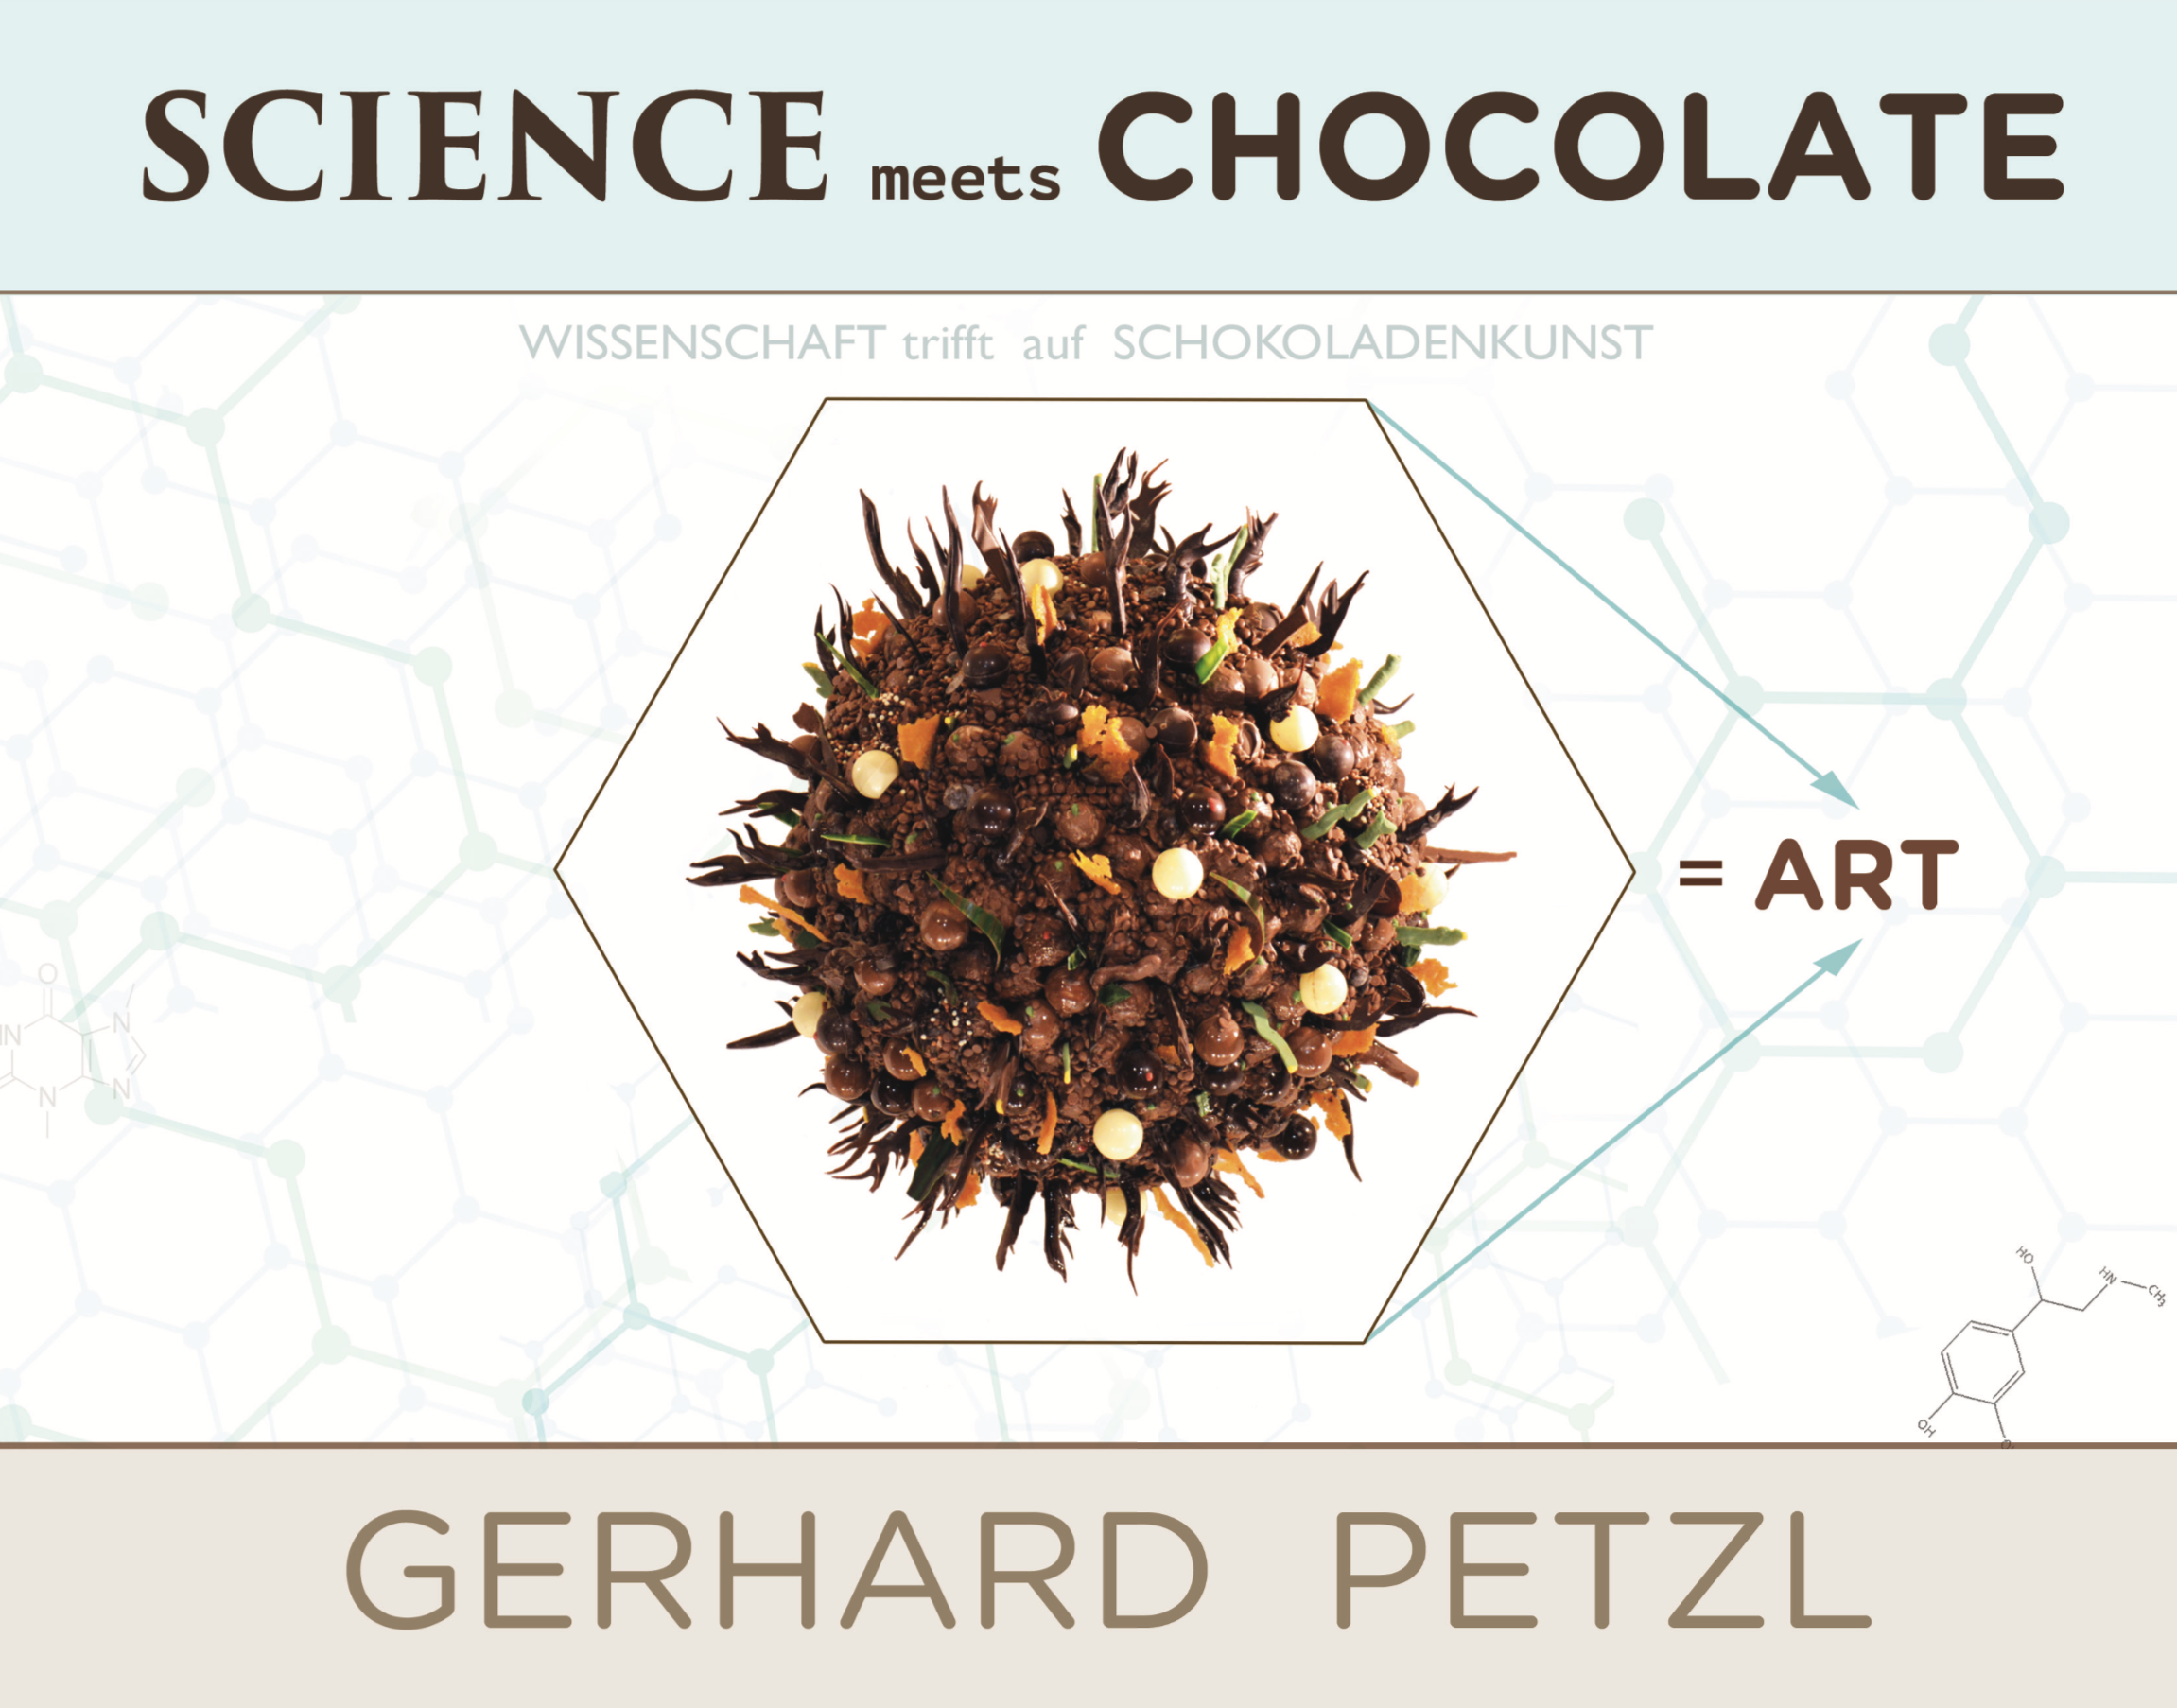 World's first 'SCIENCE meets CHOCOLATE ART' book by Gerhard Petzl available now!